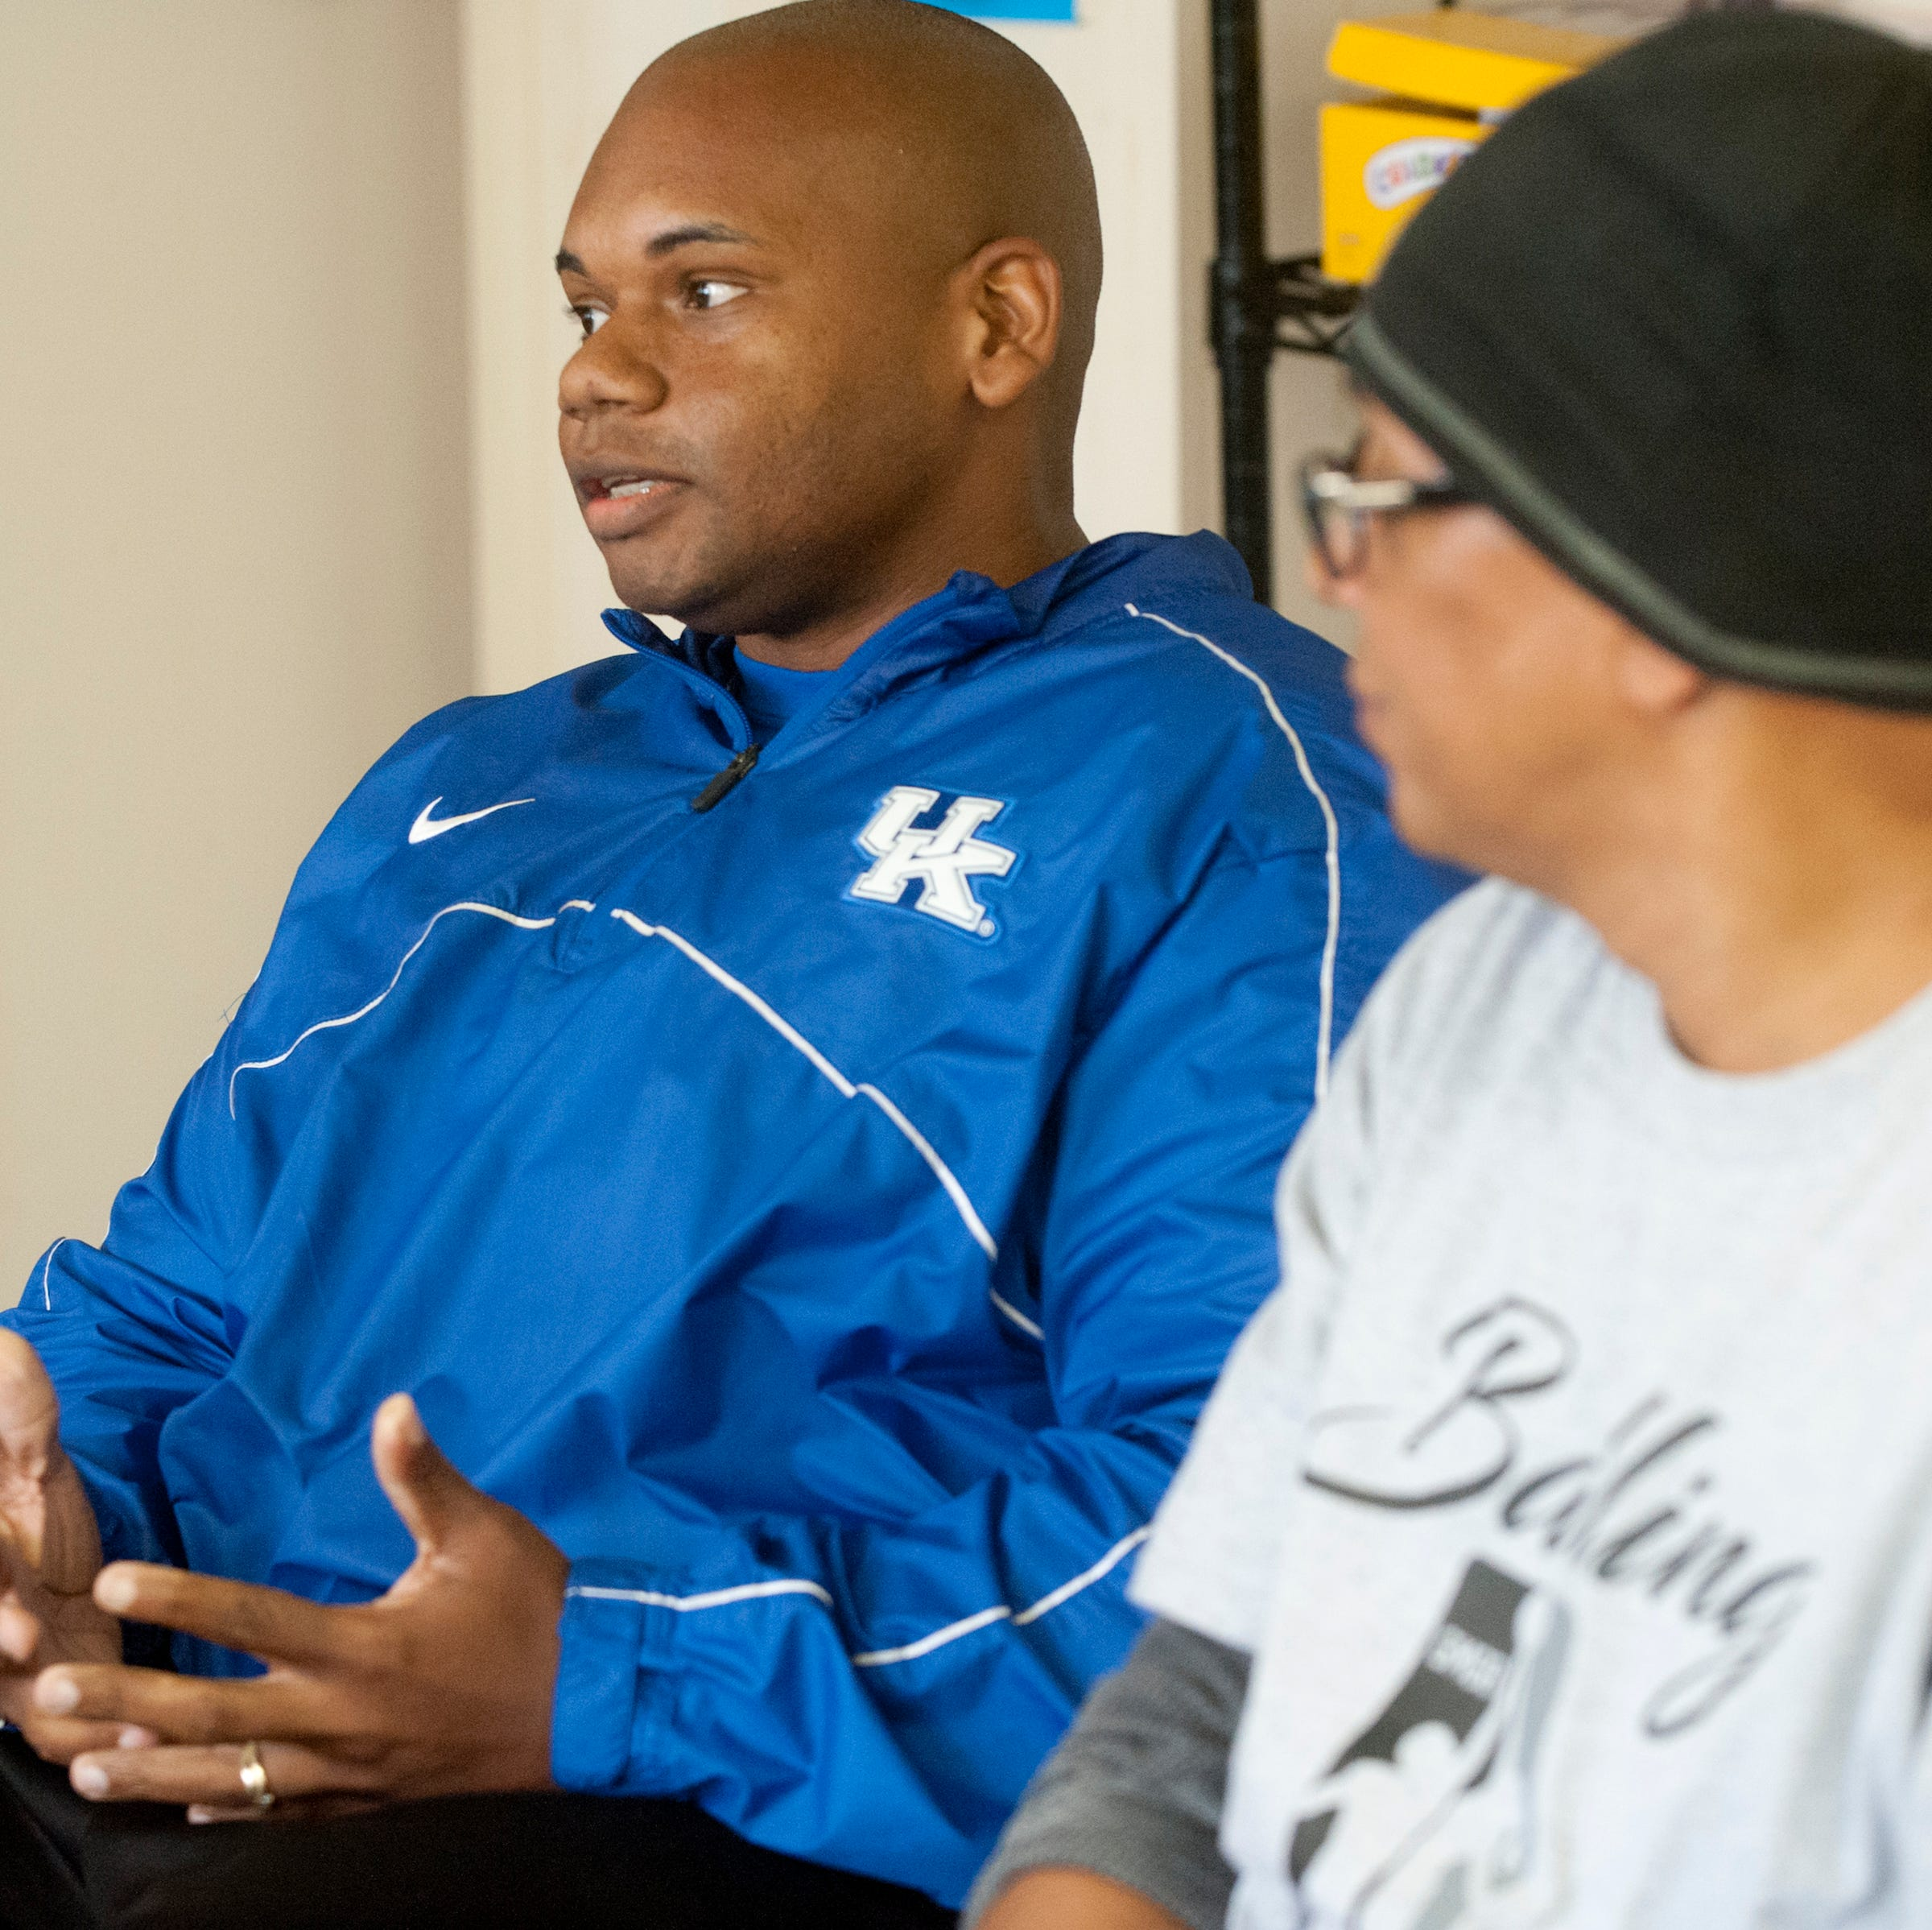 Kentucky Commissioner of Education Wayne Lewis chats with Balling for a Cause members at the Chestnut Street YMCA as the basketball group's spokesman, Christopher 2X looks on..October 13, 2018